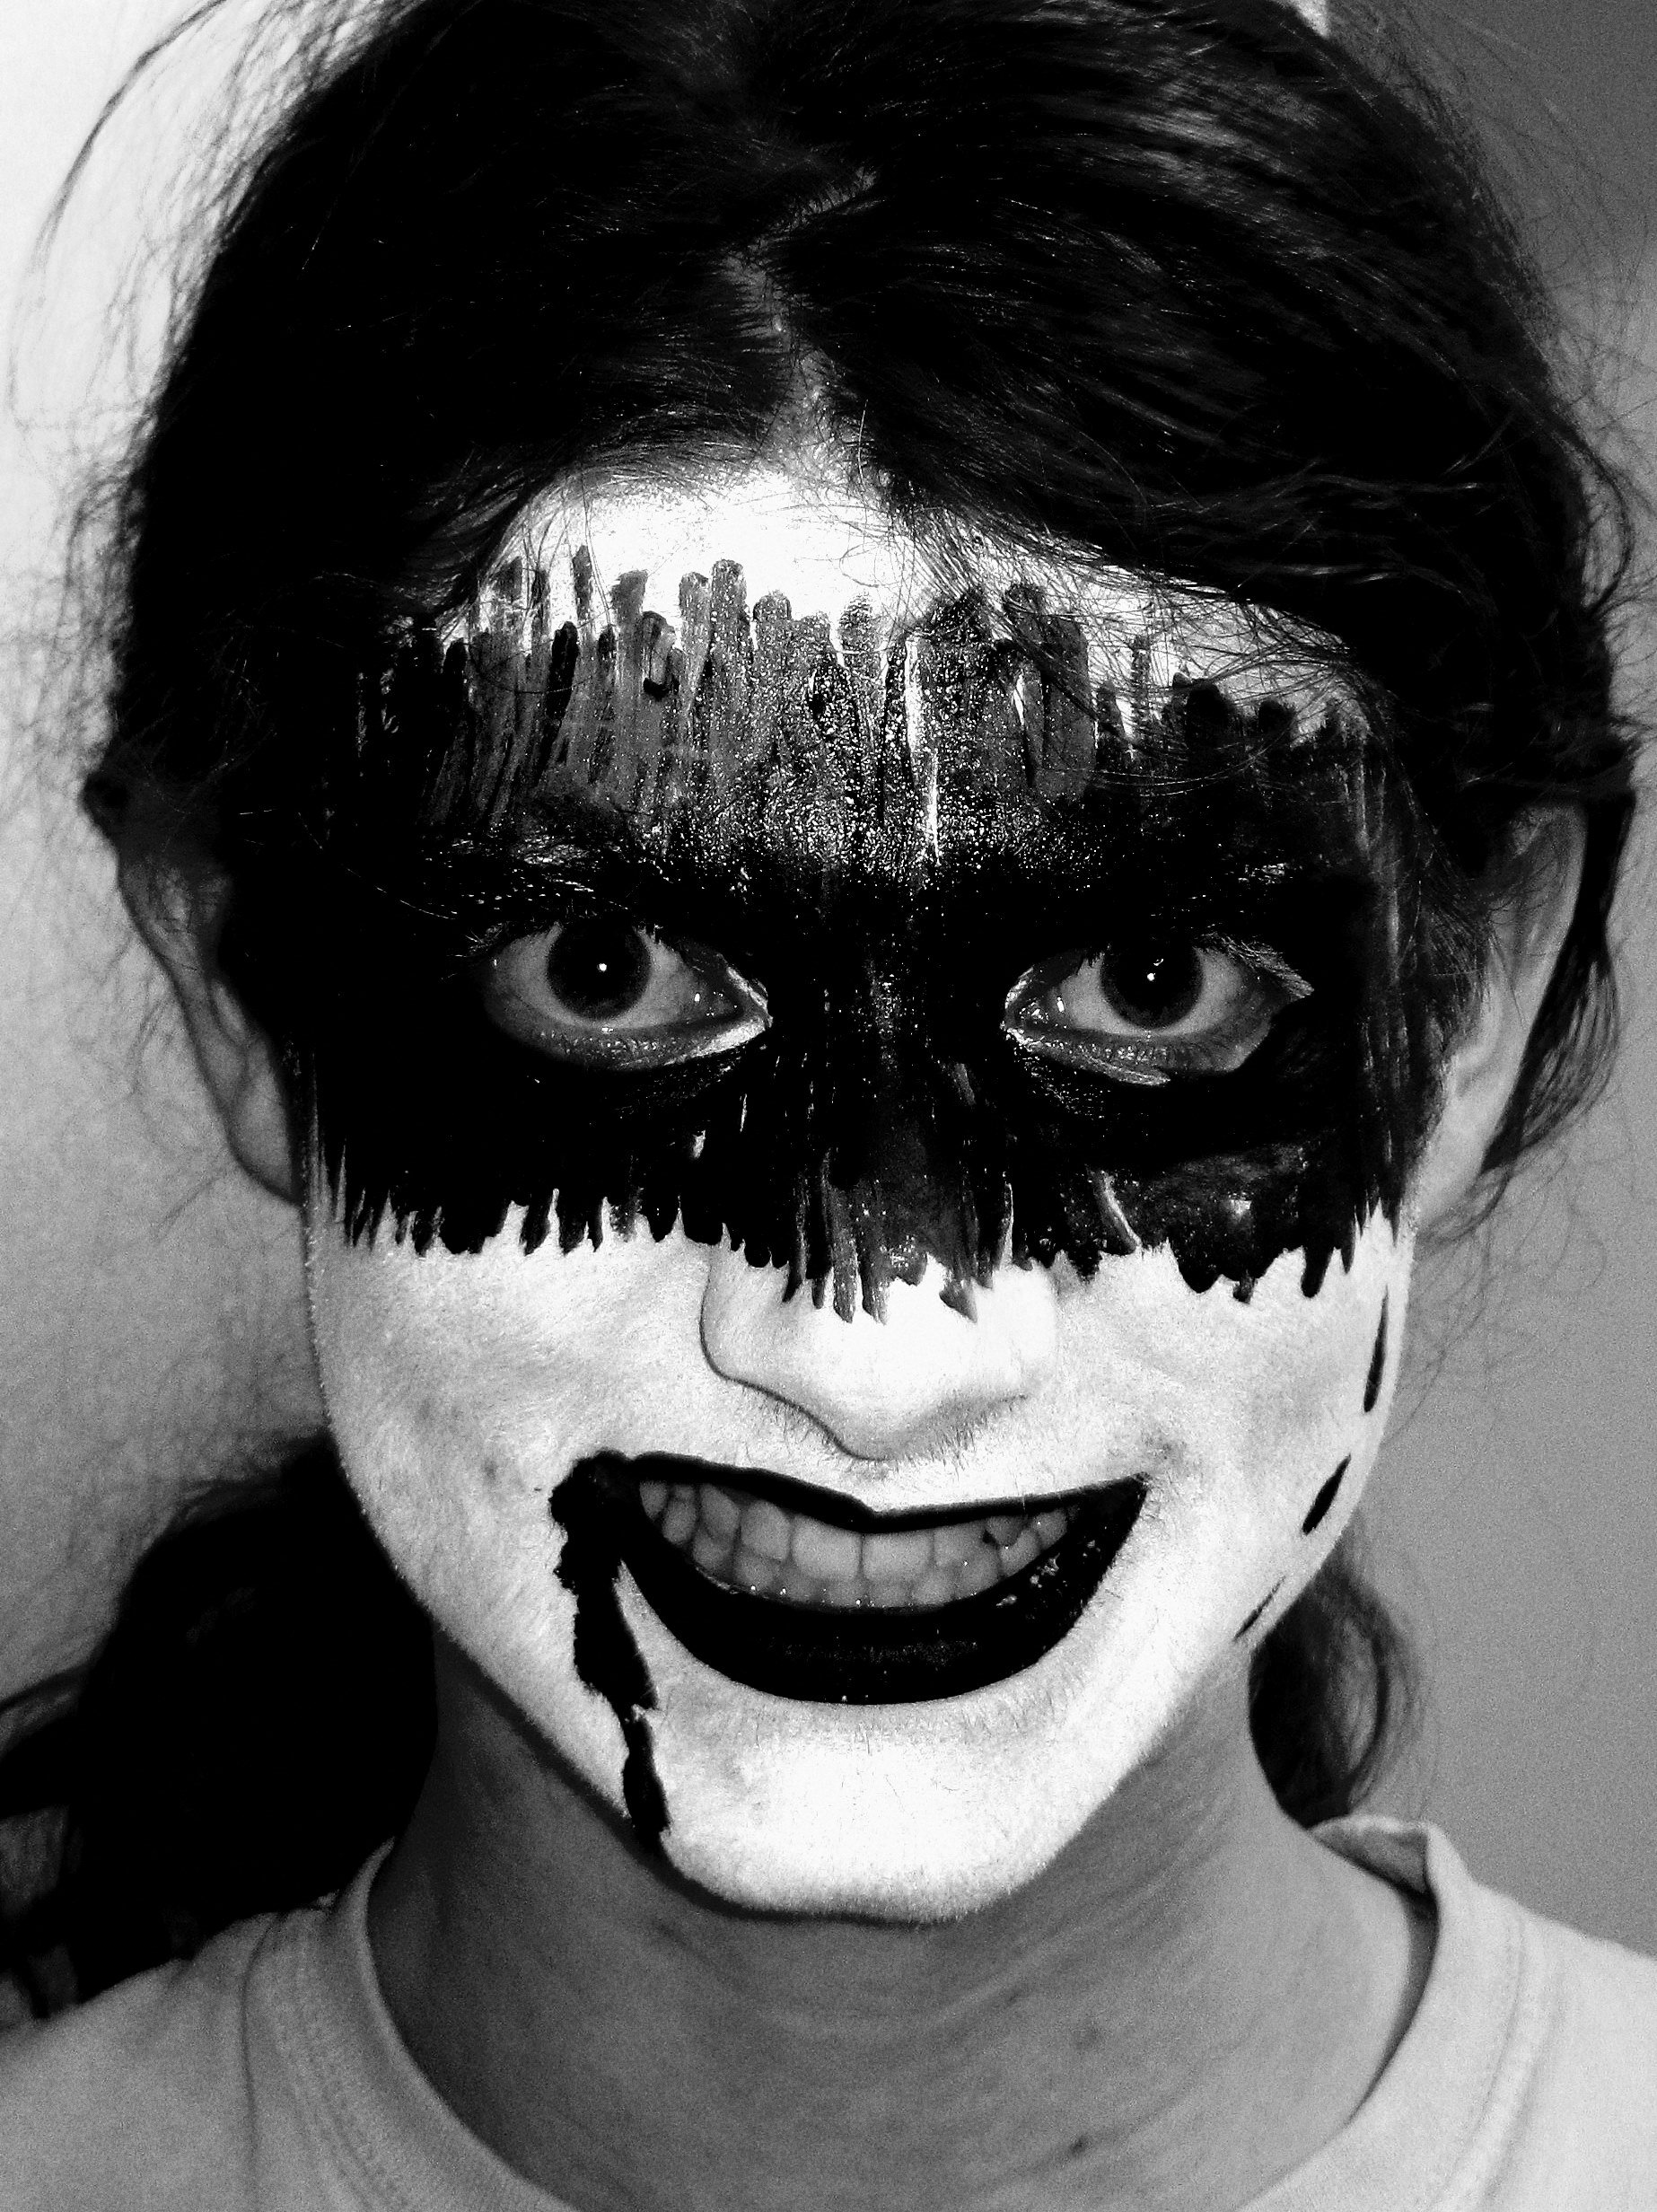 10 Wonderful Black And White Face Paint Ideas For Halloween face painting designs celestielle paint 2 2020